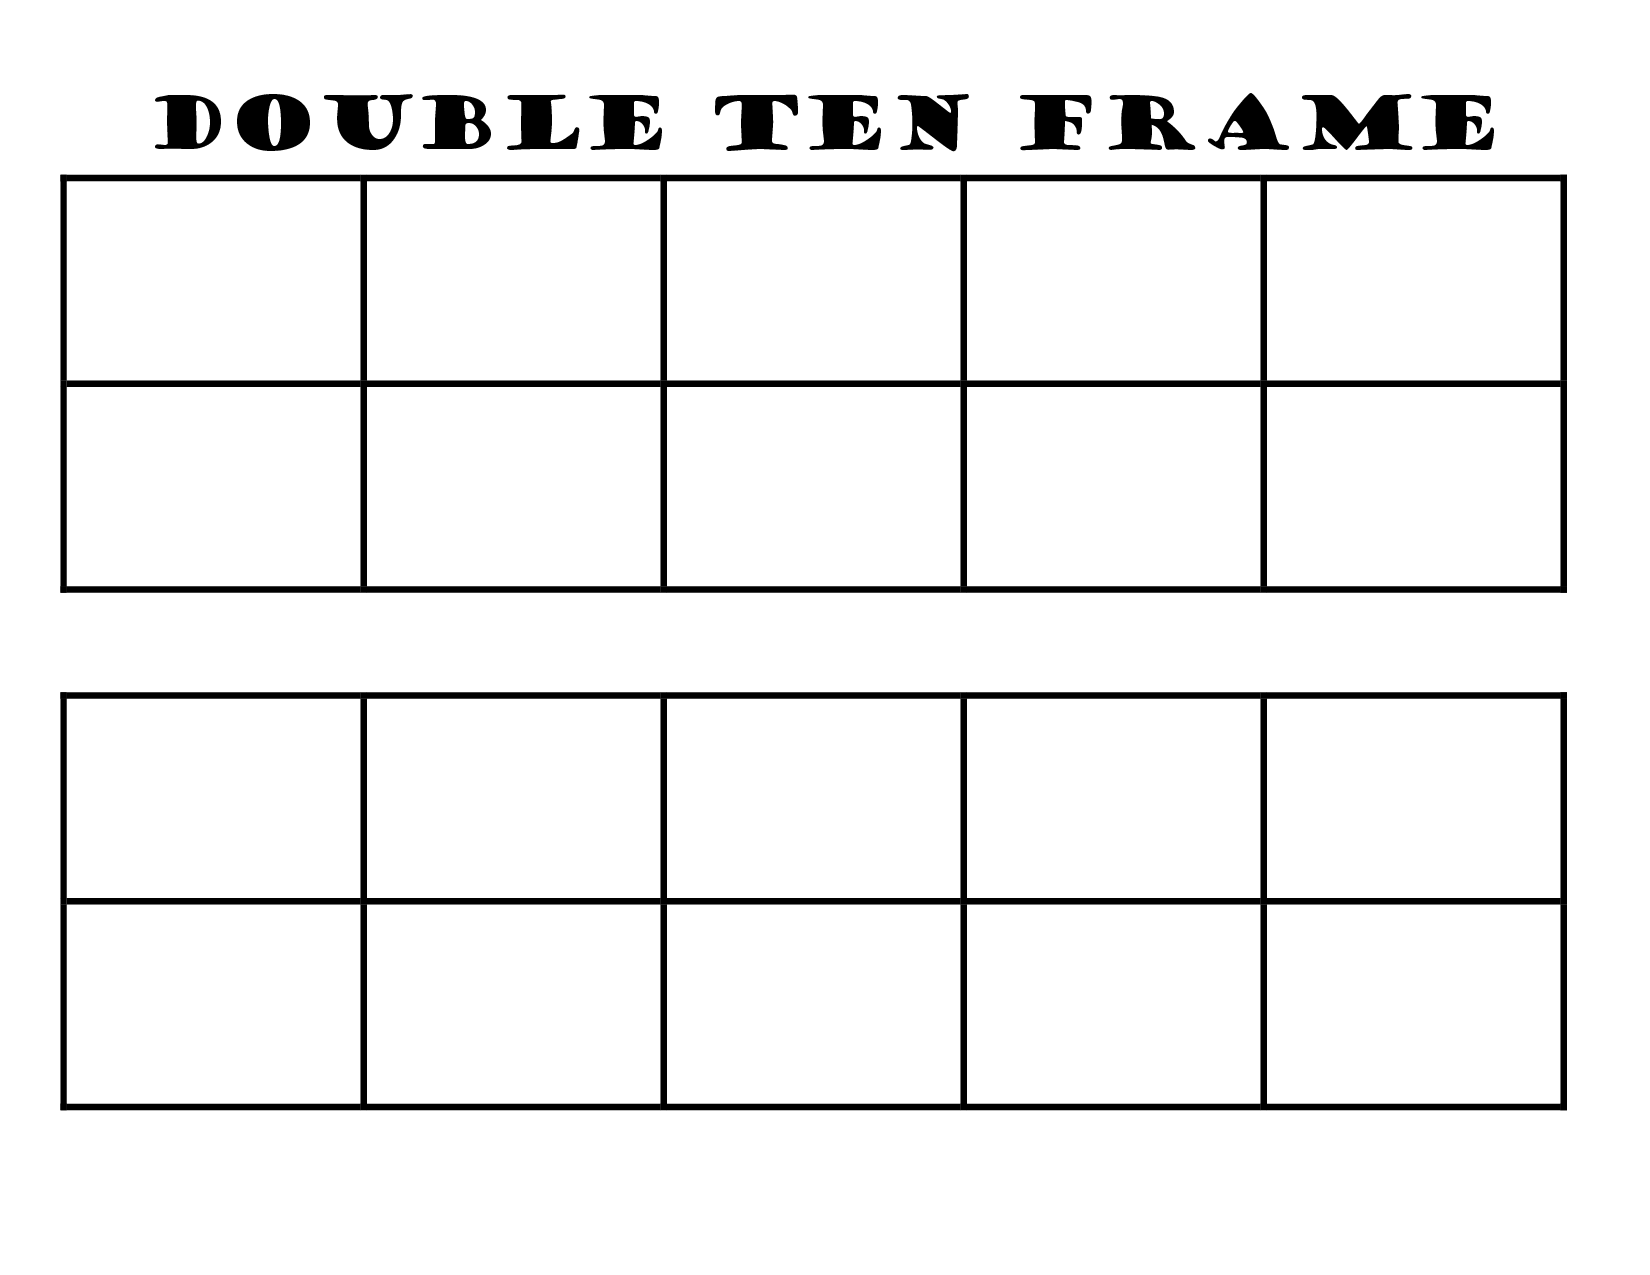 10 frame template printable - 6 best images of 10 frame template printable blank